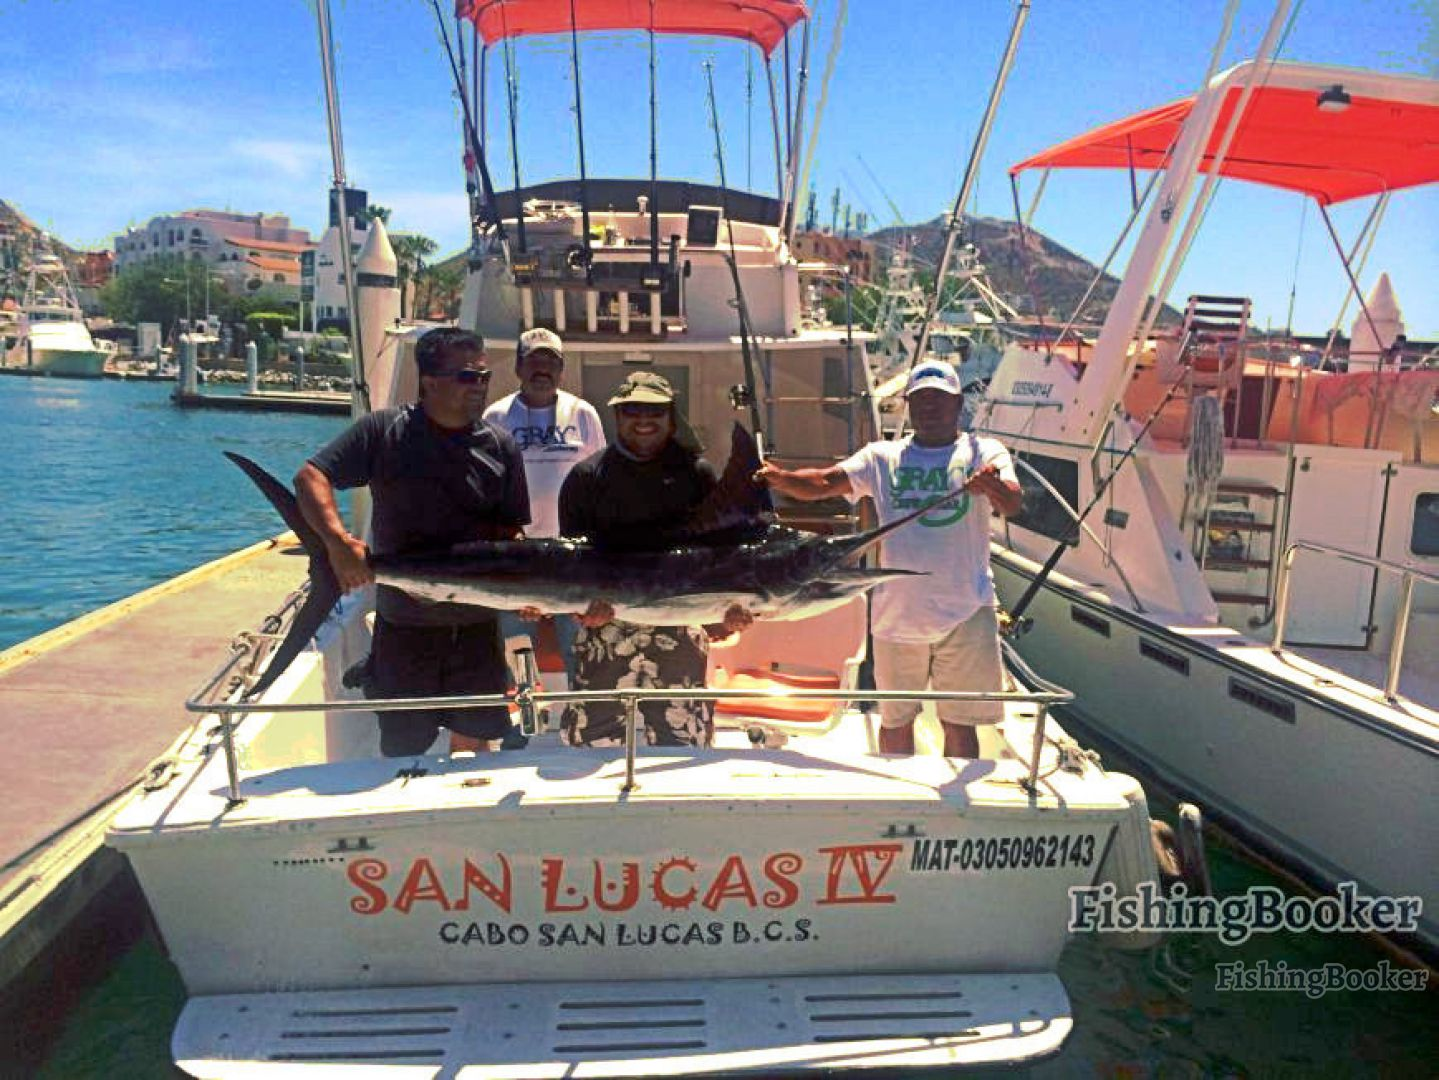 Solmar vi sportfishing 28 ft boat cabo san lucas mexico for Cabo fishing charters